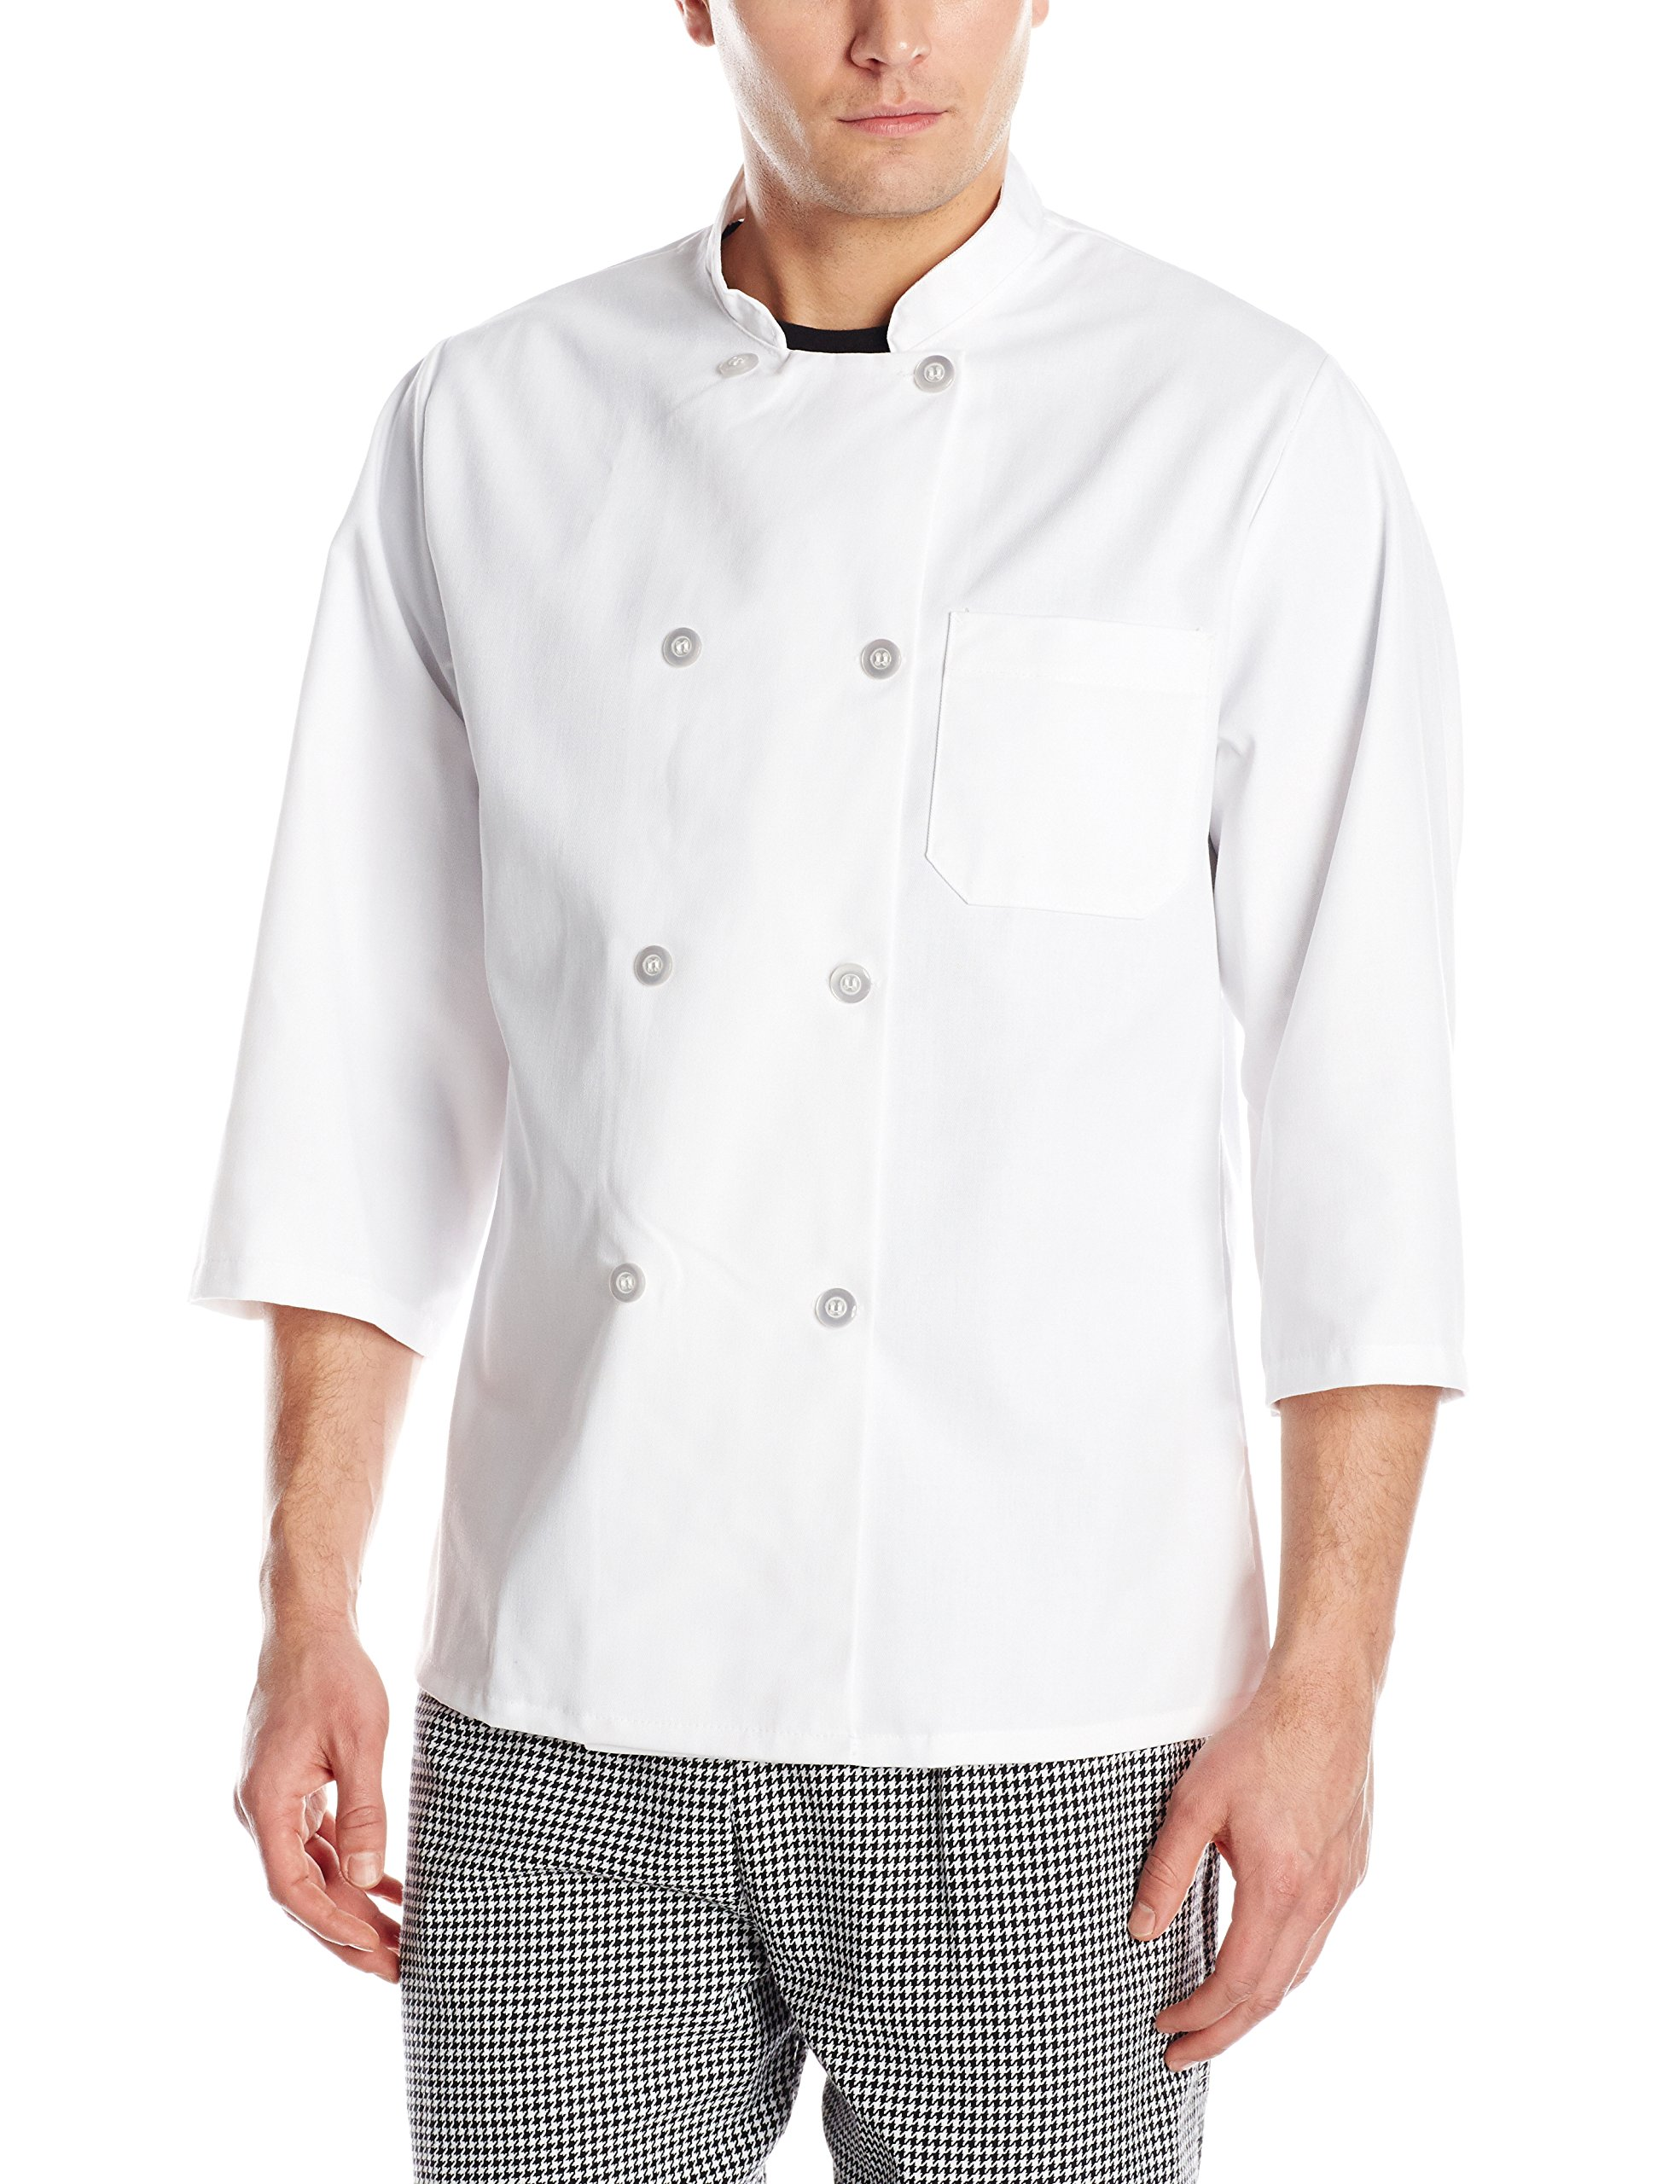 Red Kap Chef Designs¾ Sleeve Chef Coat, White, Medium by Chef Designs